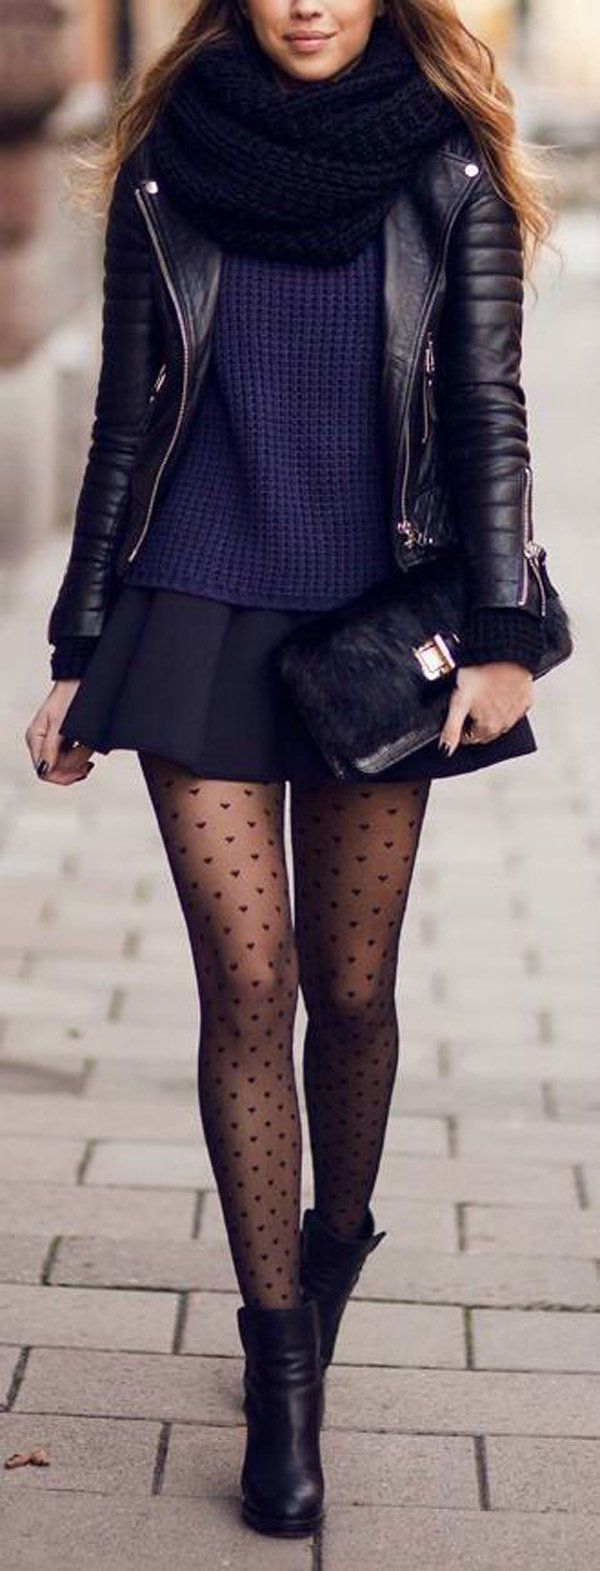 30 Stylish Fall Outfits For Women